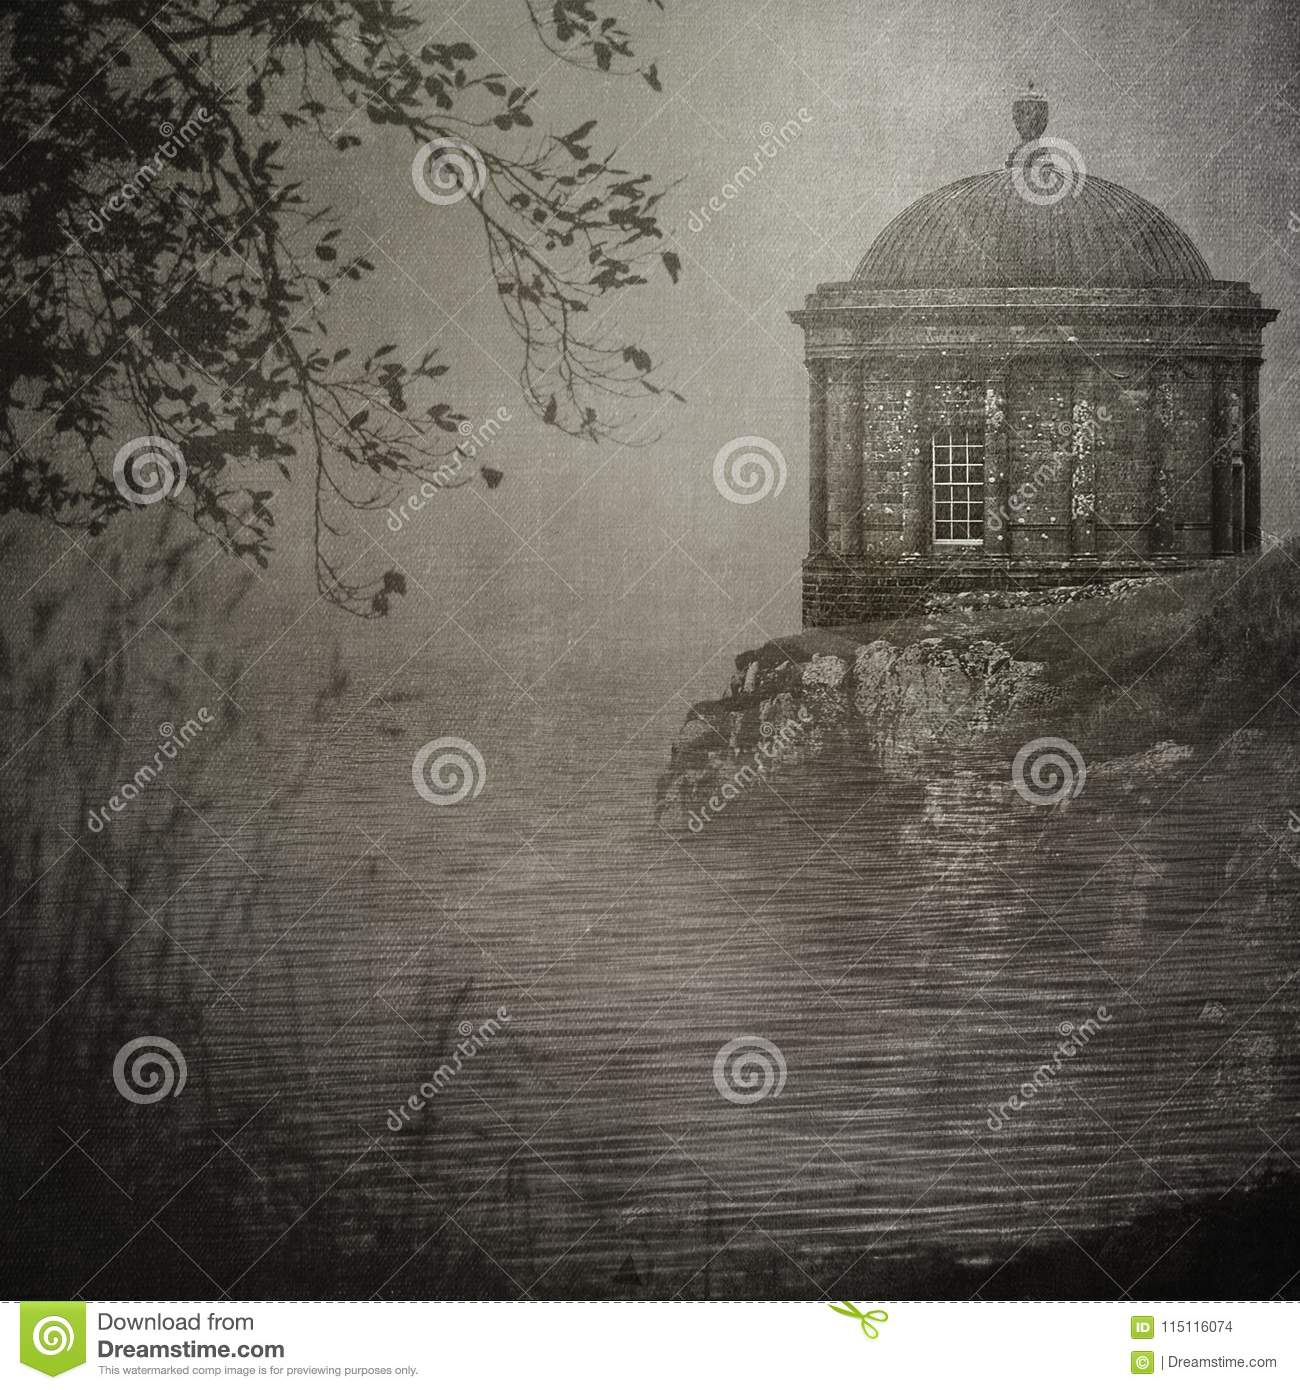 Mussenden Temple on a cliff`s edge